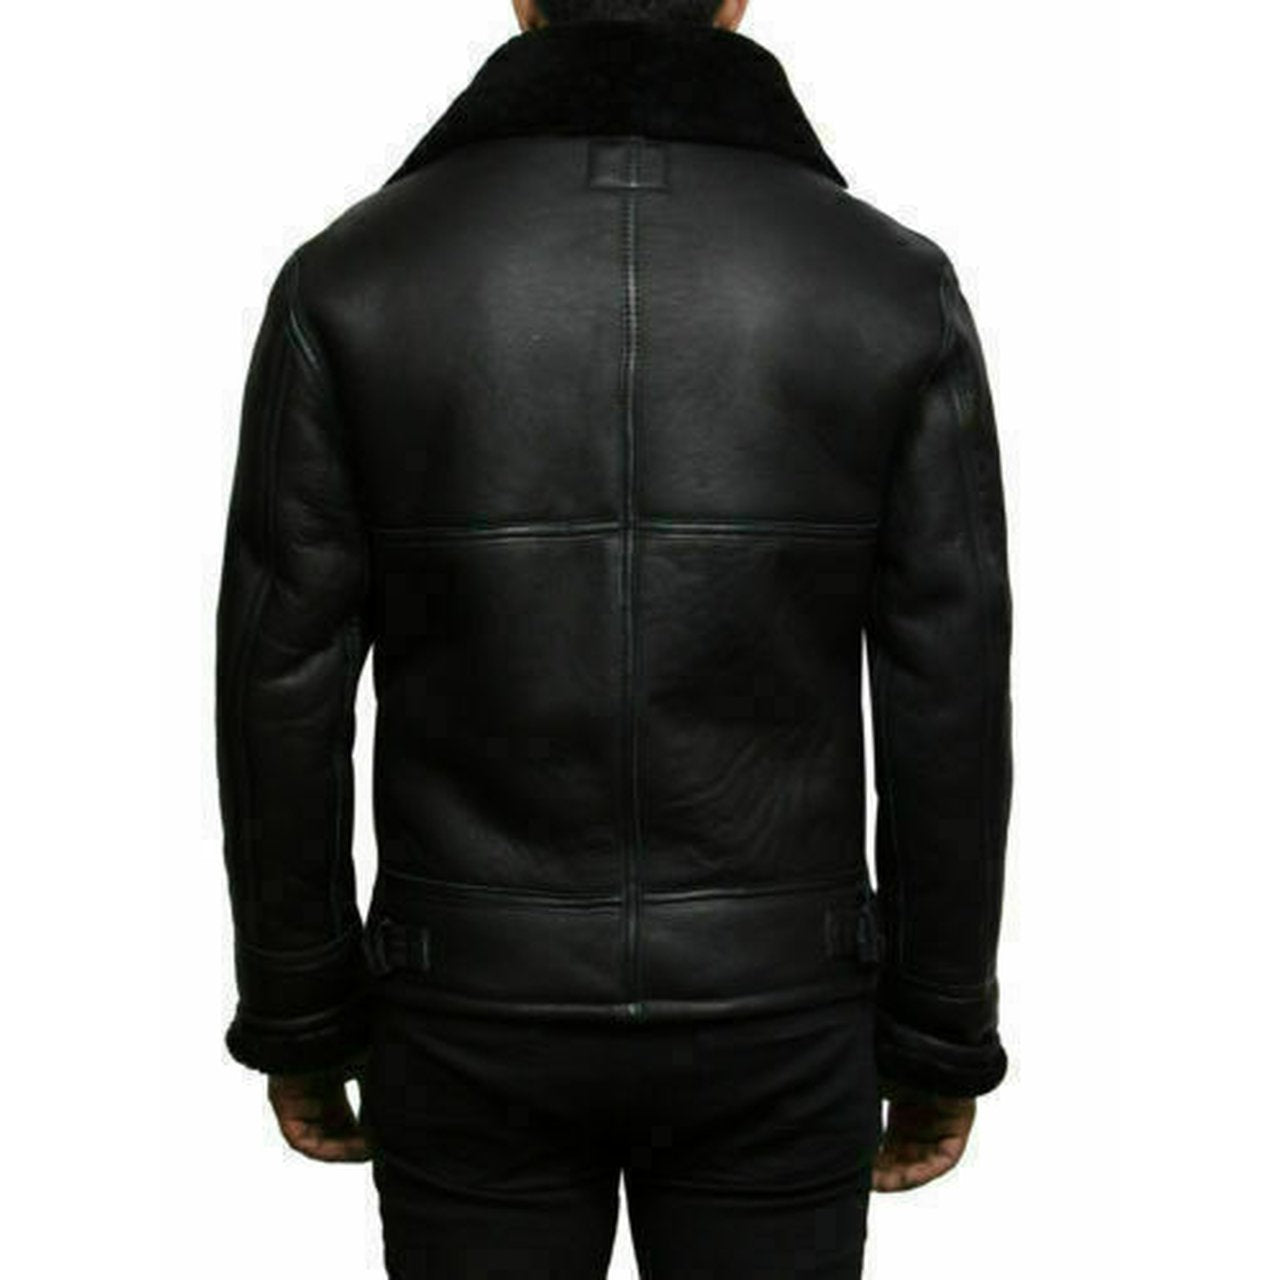 Black Bomber RAF Aviator Pilot Flying Mens Genuine Sheepskin Leather Jacket - Leather Jacket